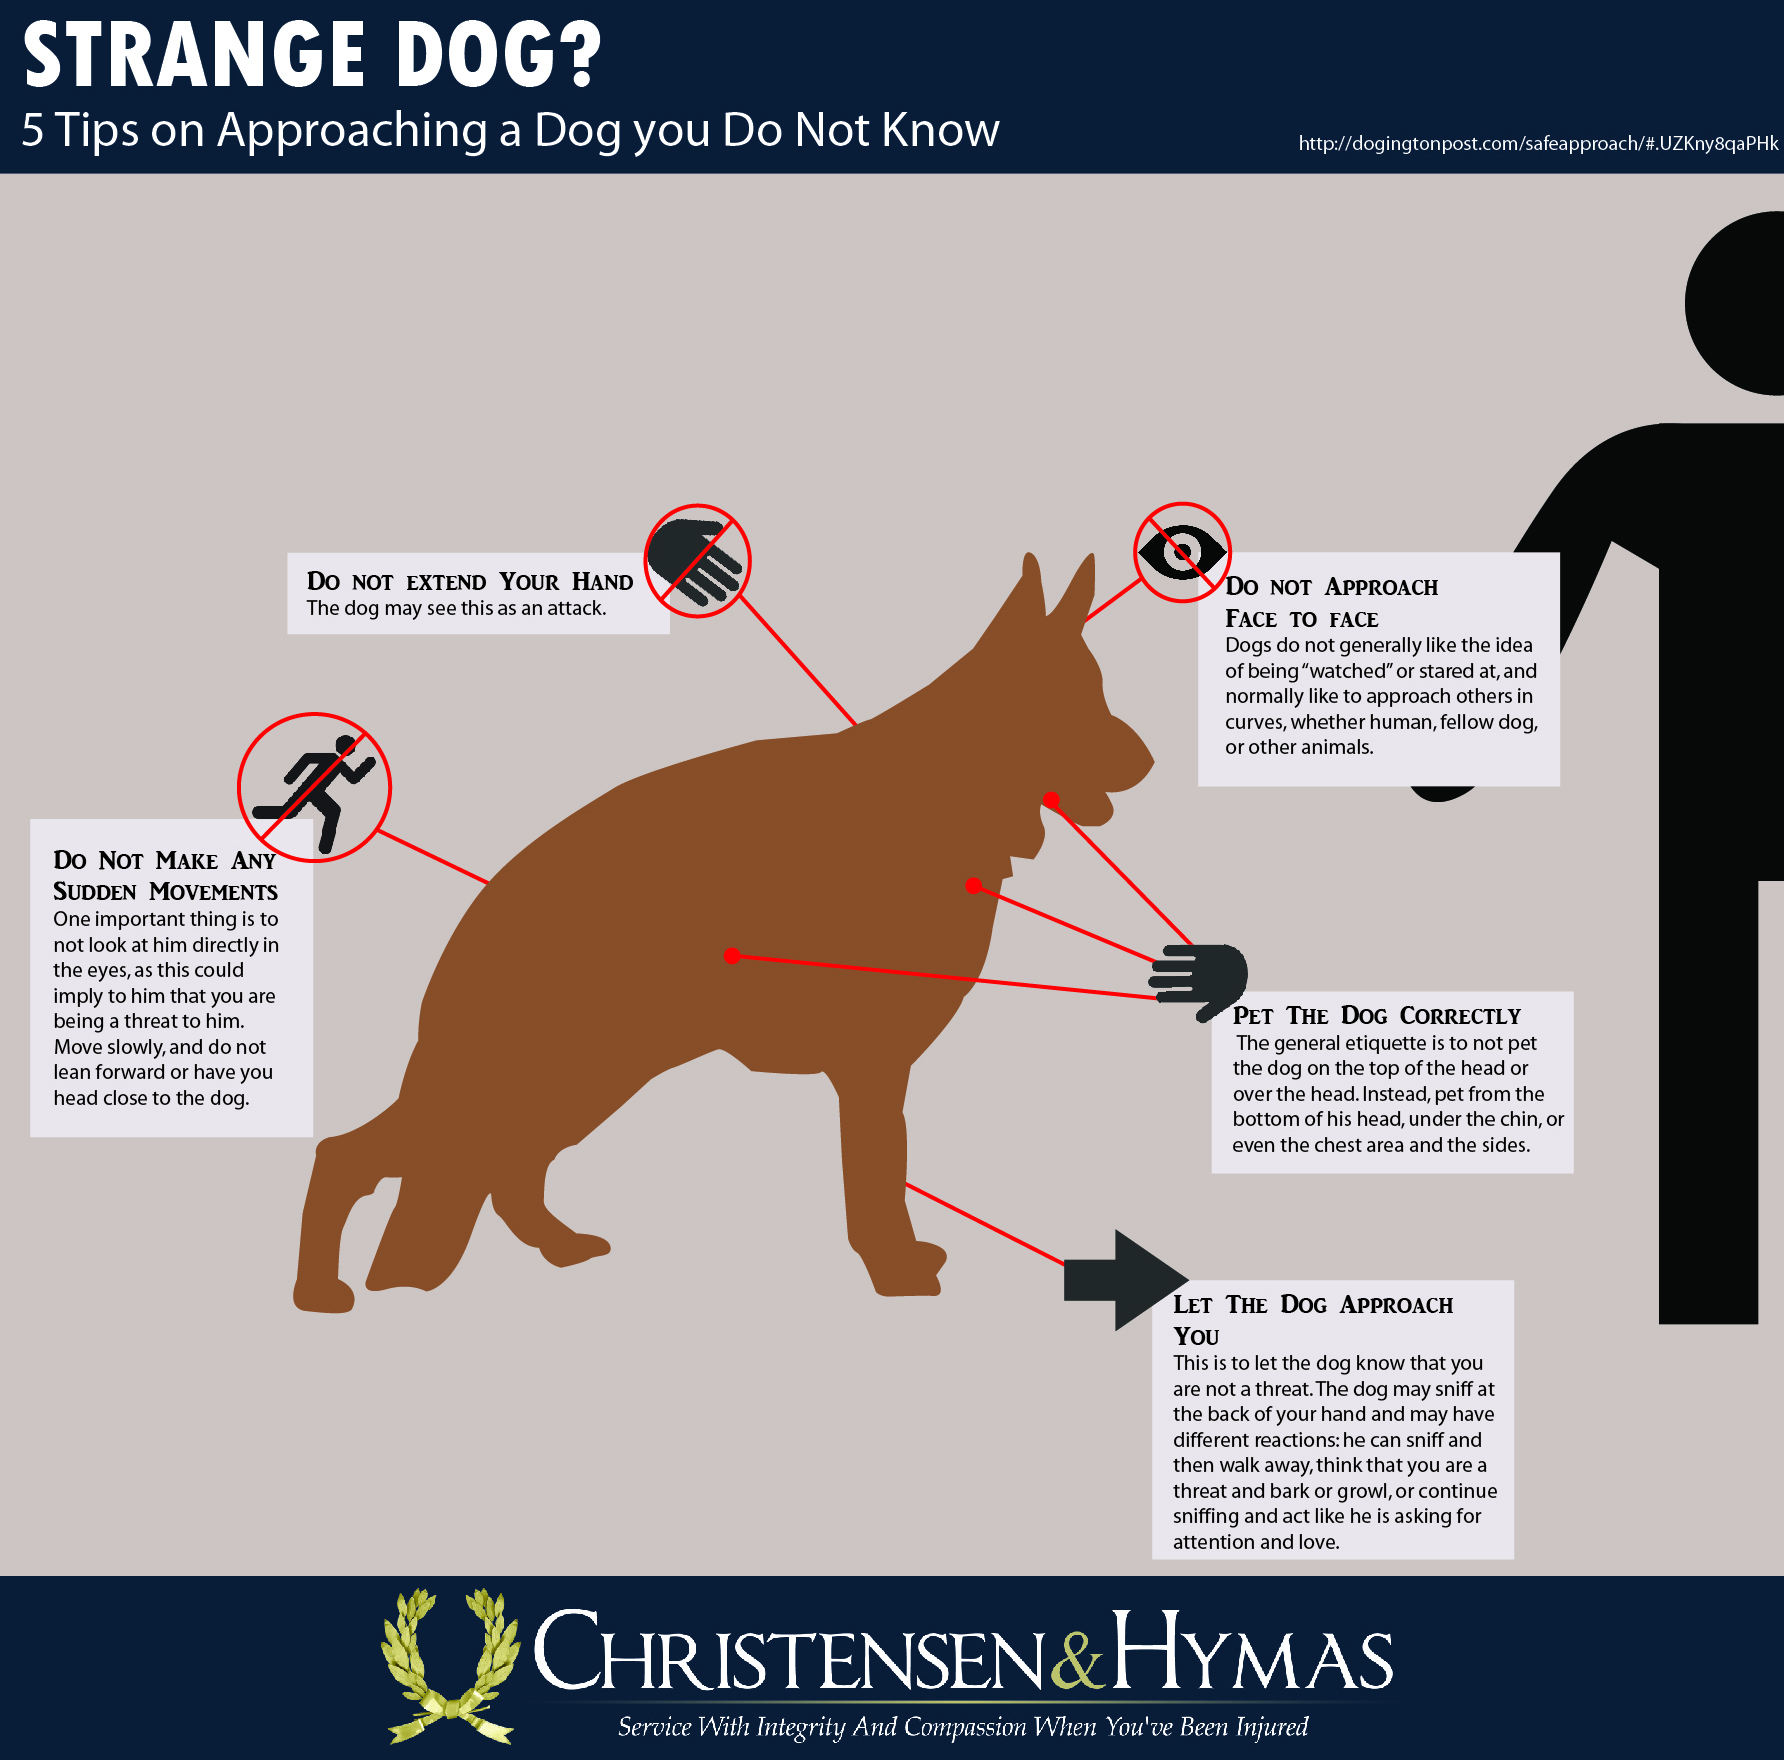 5 Tips on how to Approach a Strange Dog | Utah Personal Injury Law